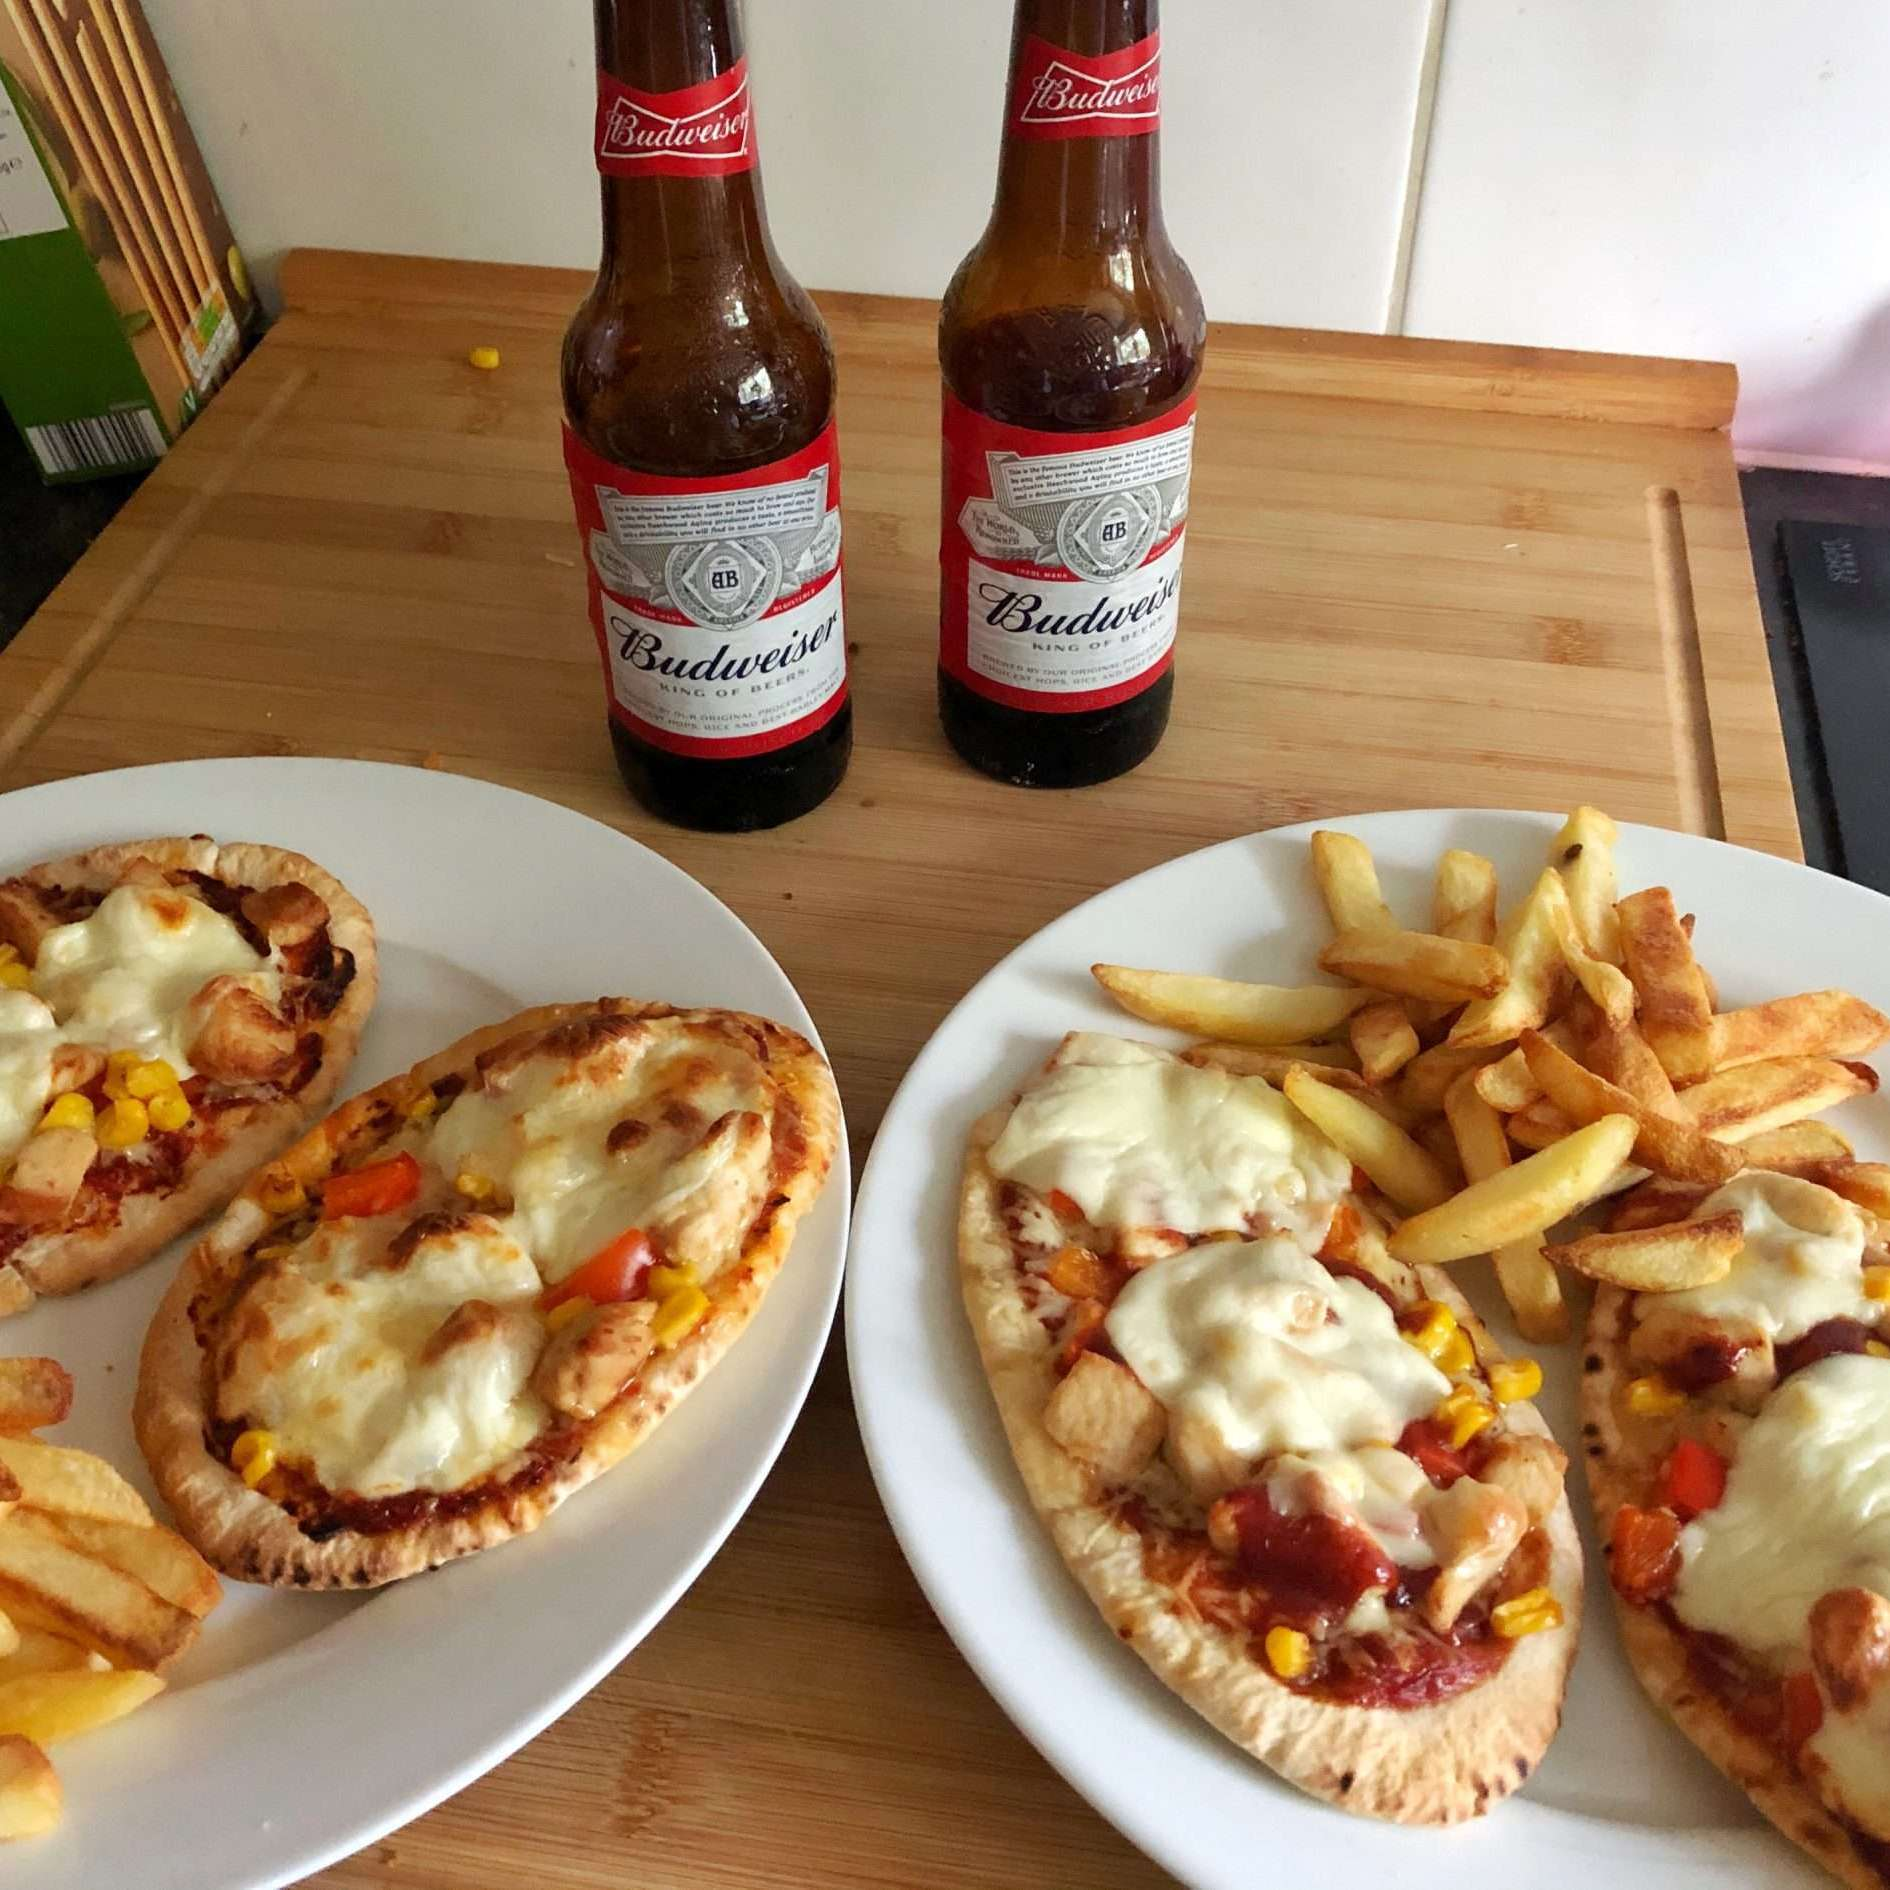 Homemade pizza, with chips, is on white plates. They are sat on a wooden chopping board and there are two bottles of Budweiser